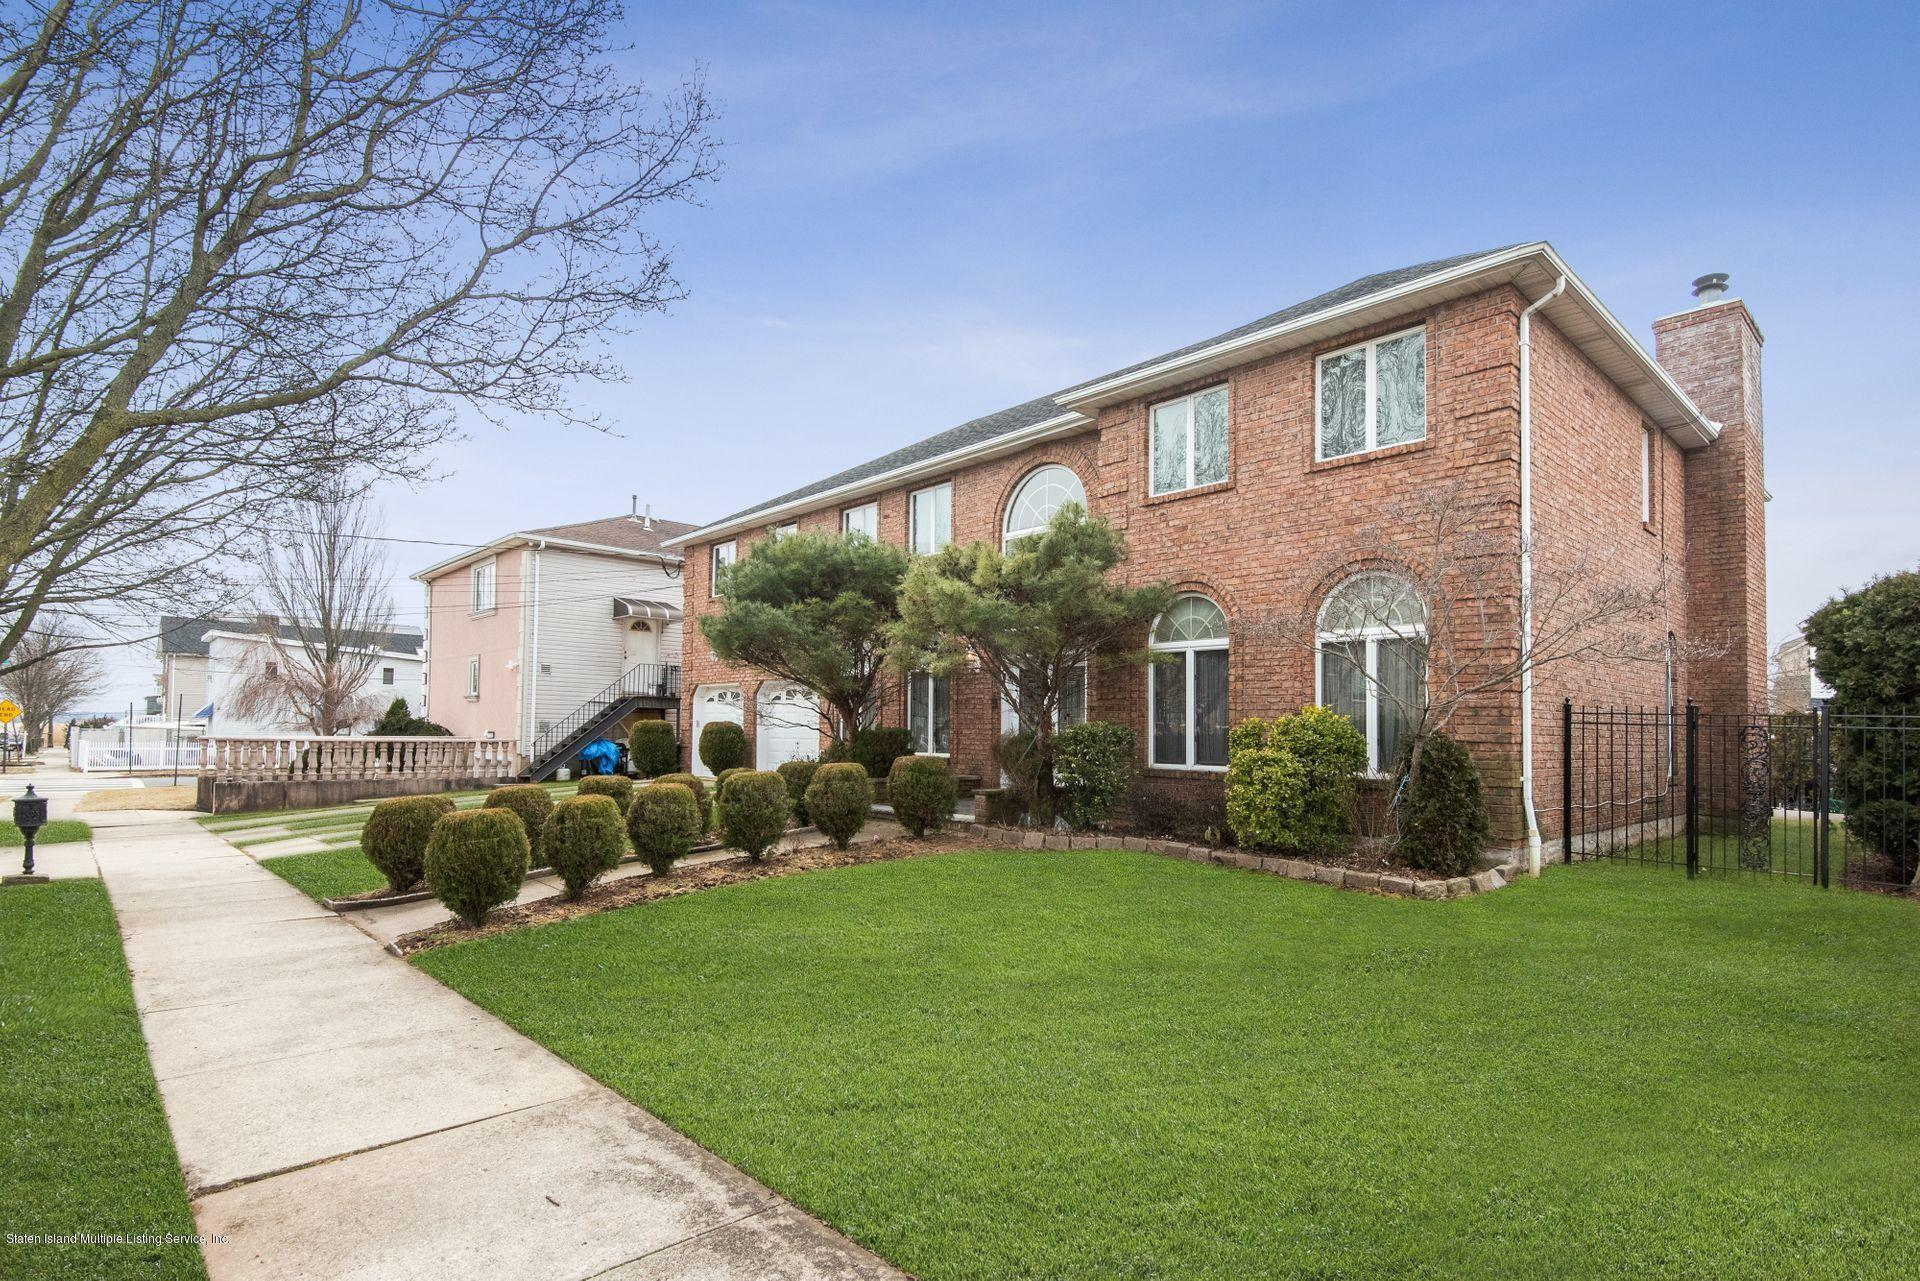 Two Family - Detached 640 Yetman Avenue  Staten Island, NY 10307, MLS-1126450-4